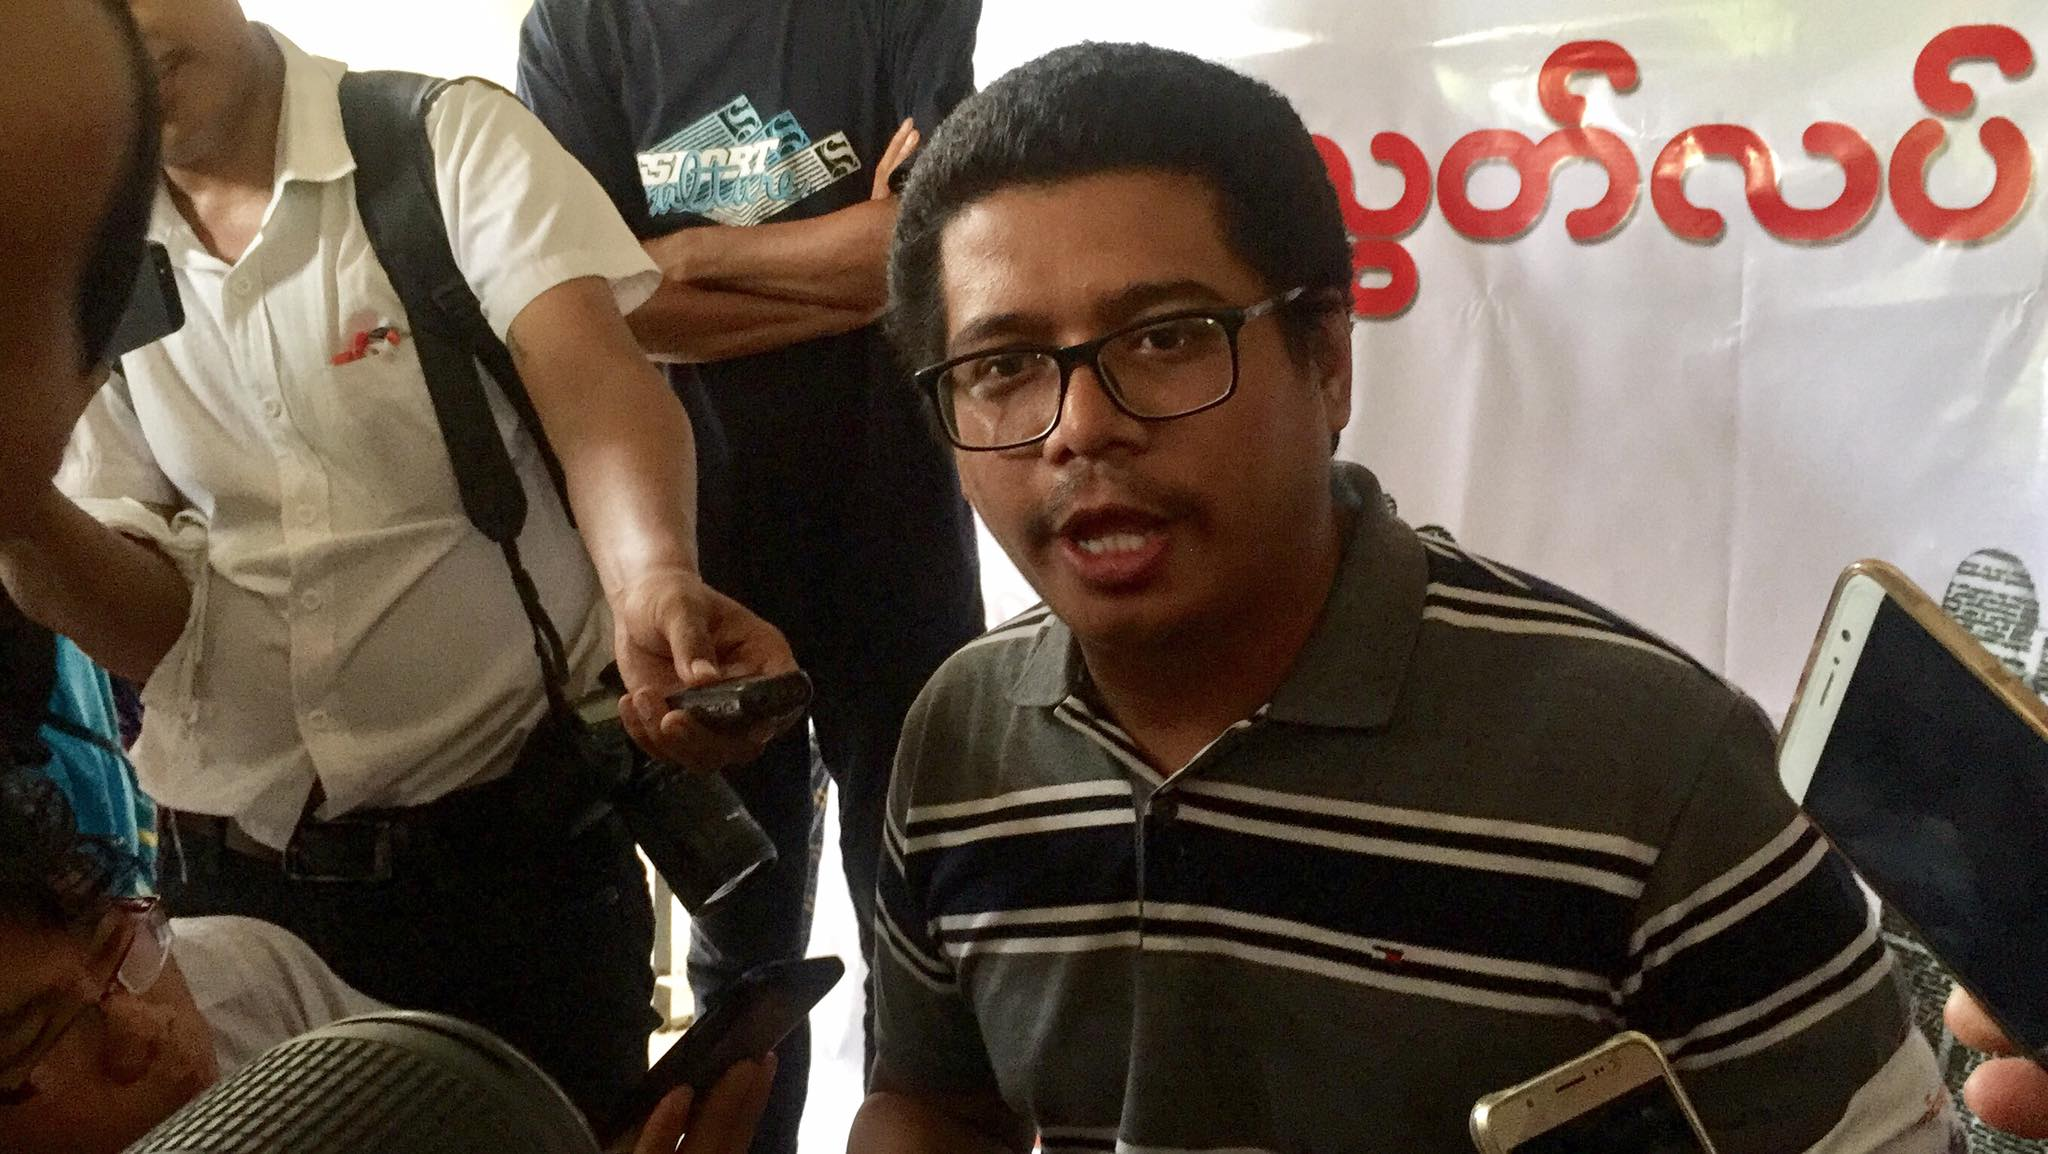 Defamation case against The Voice satirist dropped, bail denied for chief editor